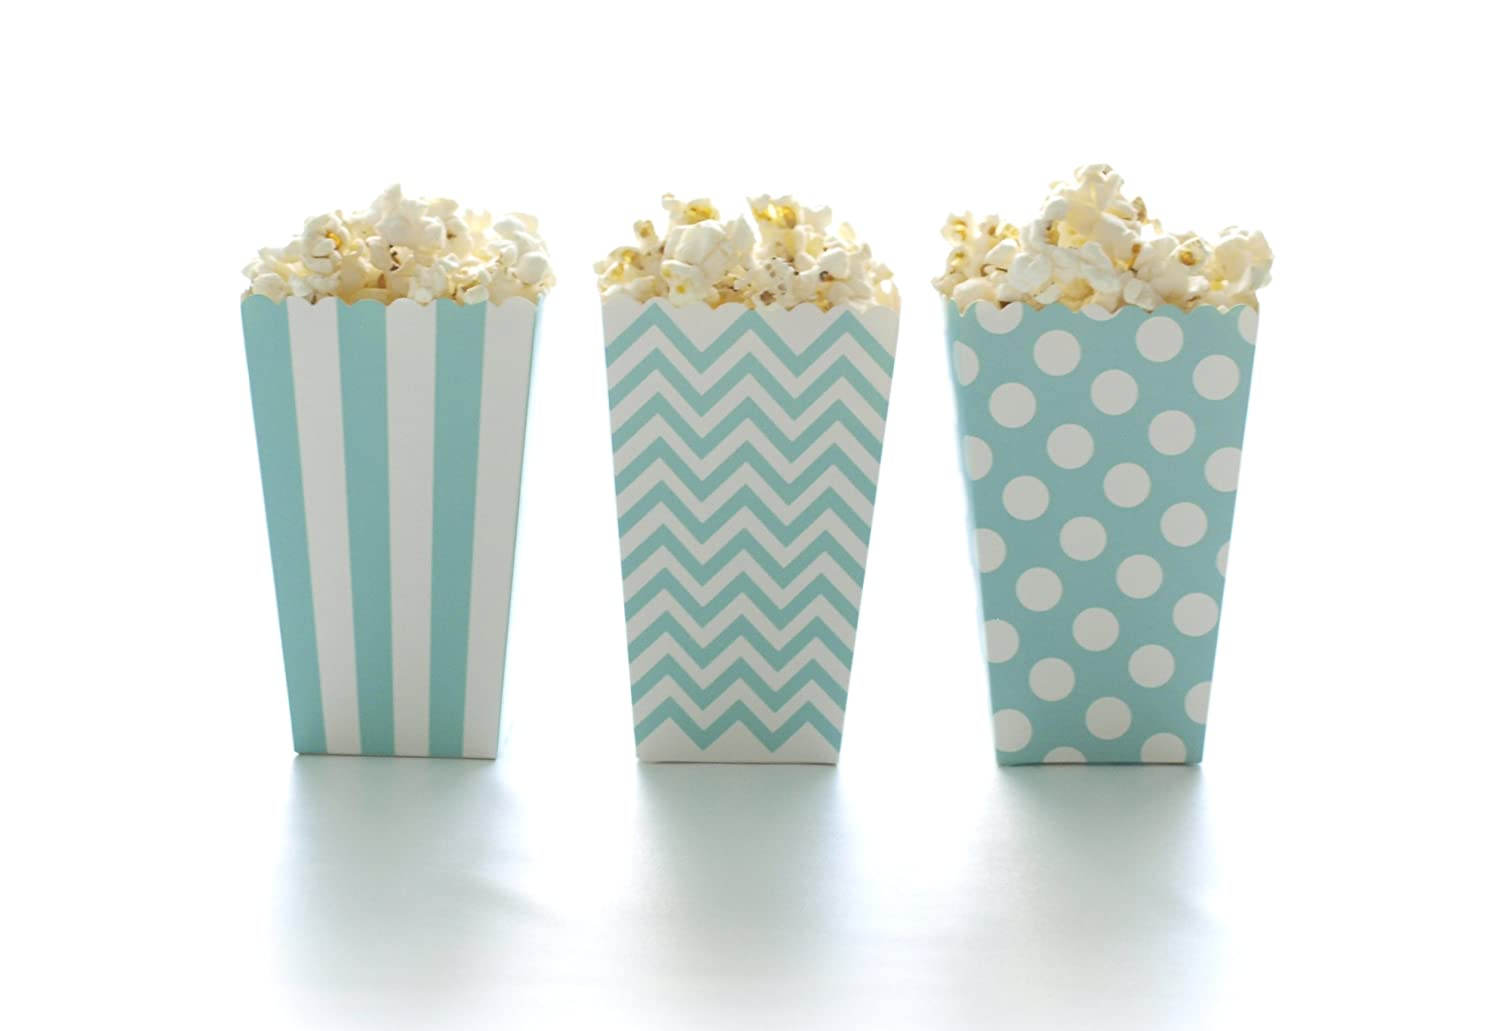 Amazon.com: Popcorn Boxes, Aqua Blue Design Trio (36 Pack) - Polka ...